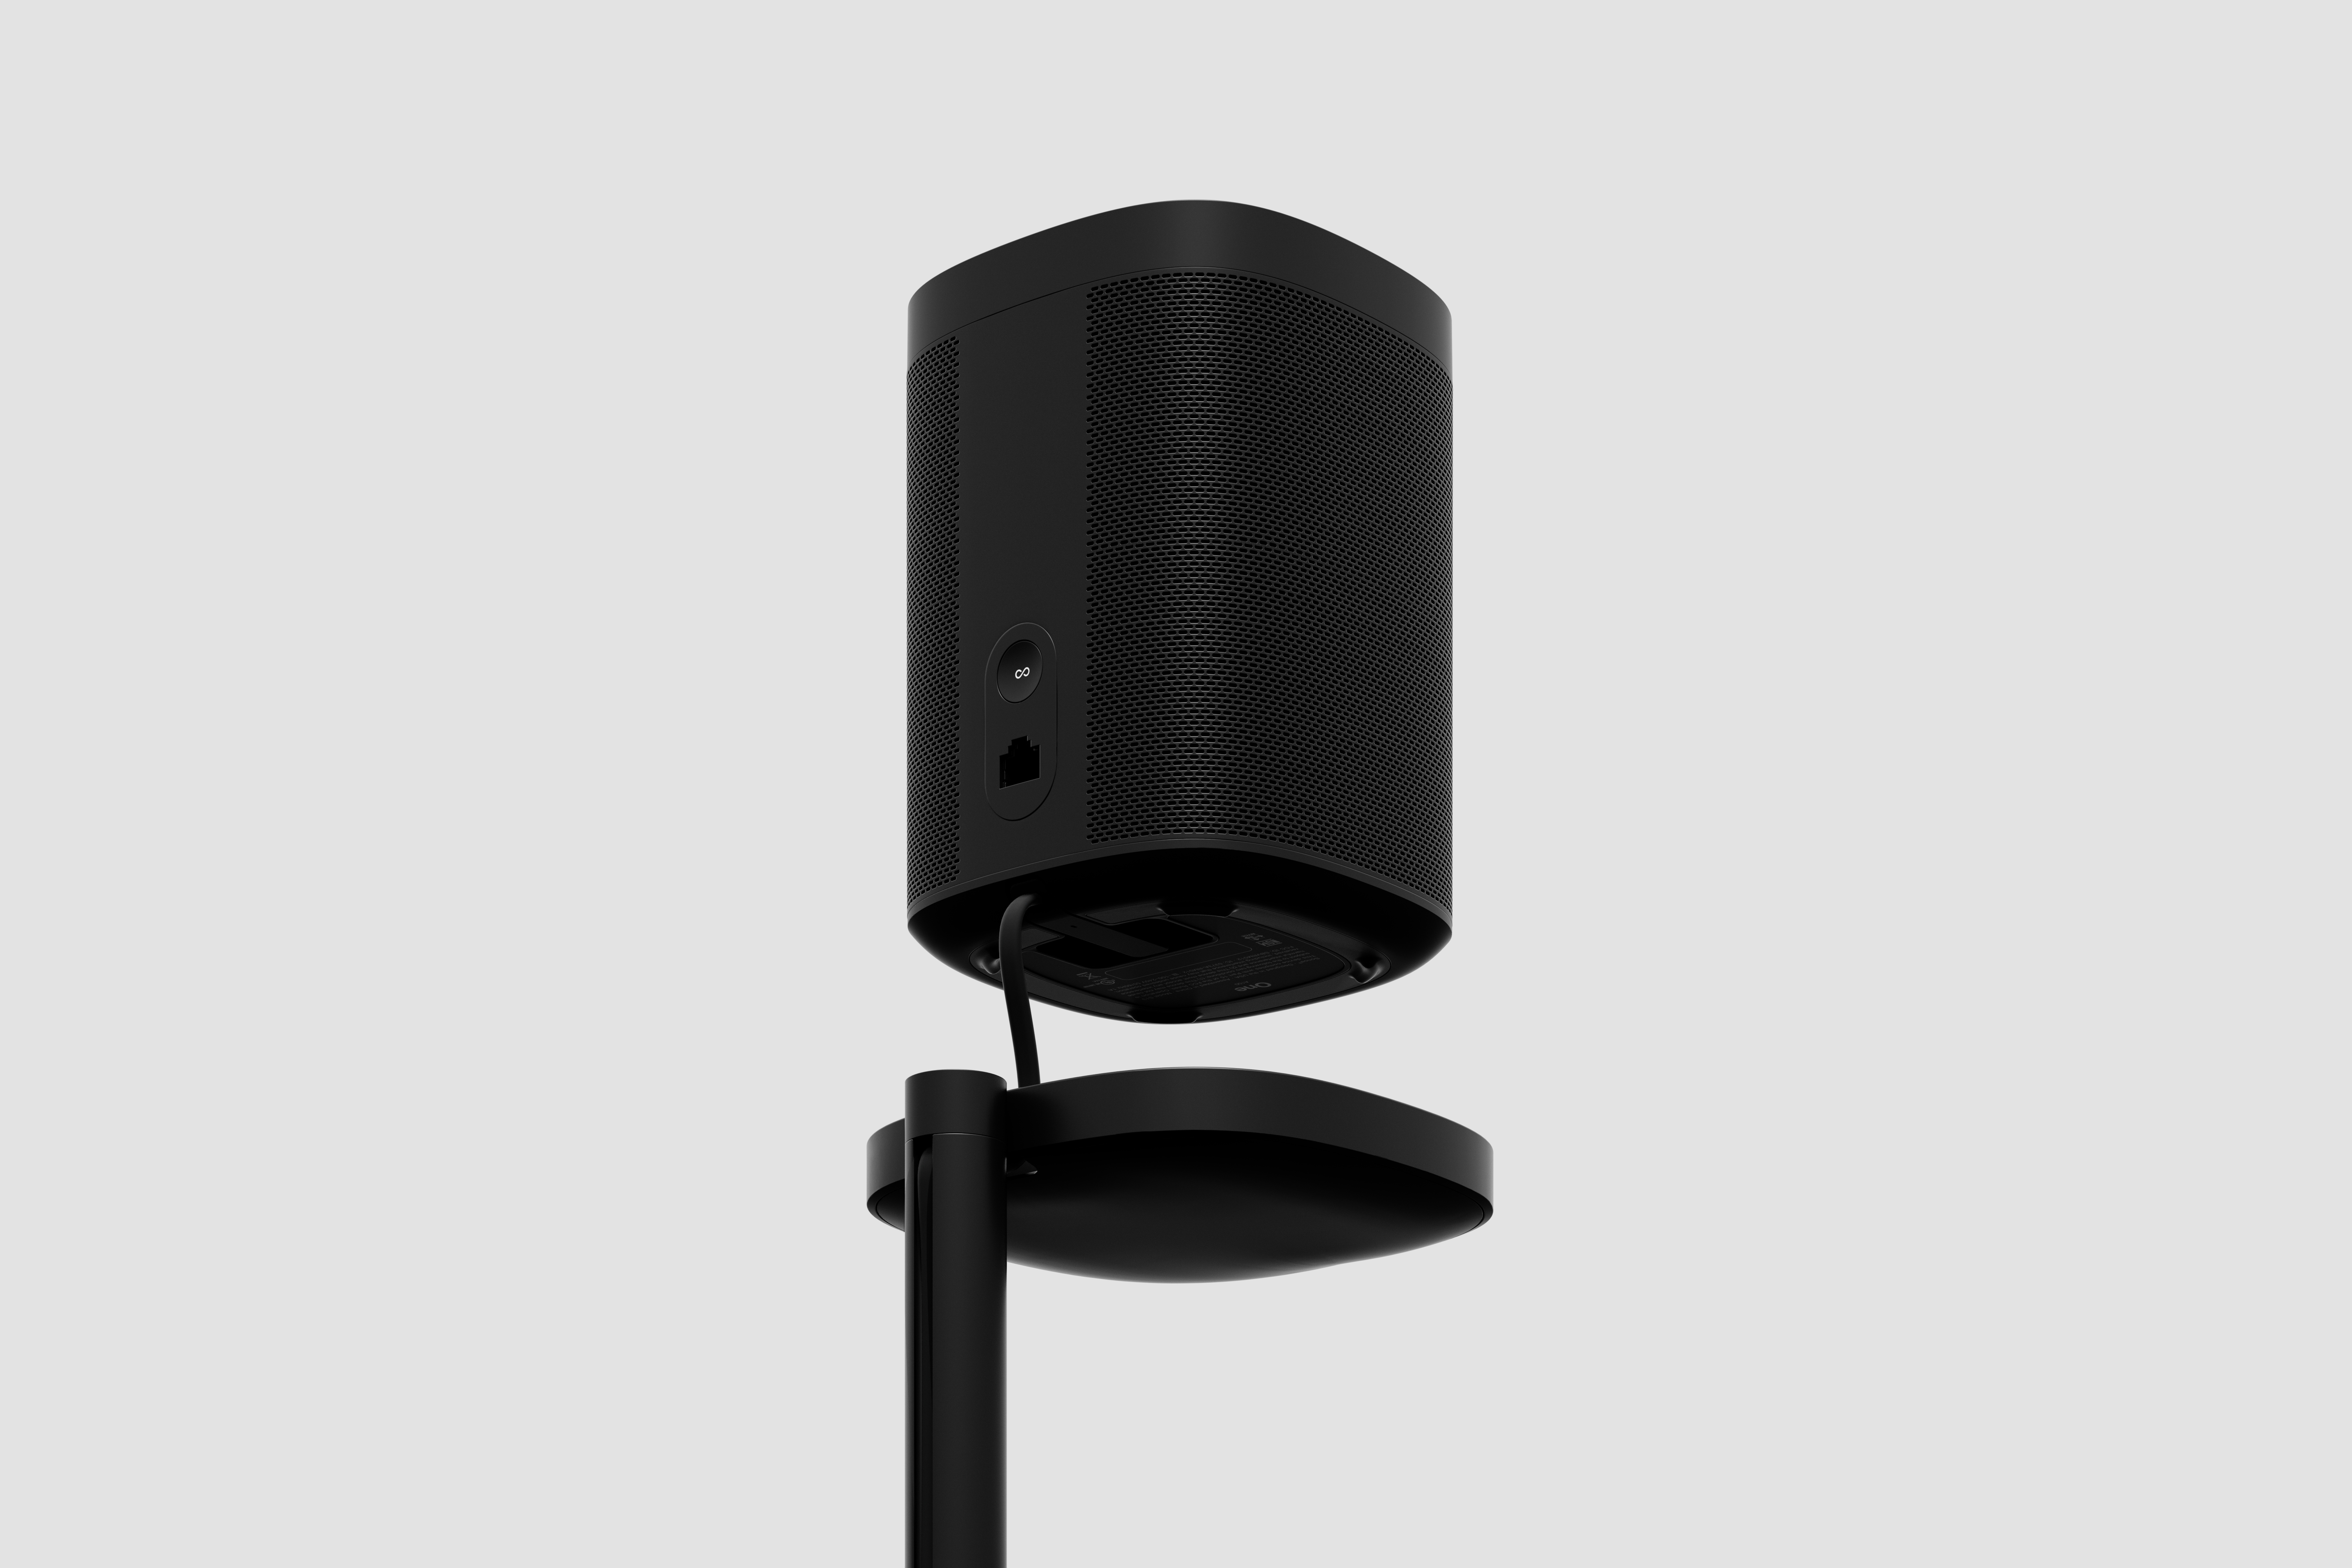 Stands_Black-Product_Render-Exploded-Q2FY19_Core_Creative_MST-MST_JPEG_fid28805